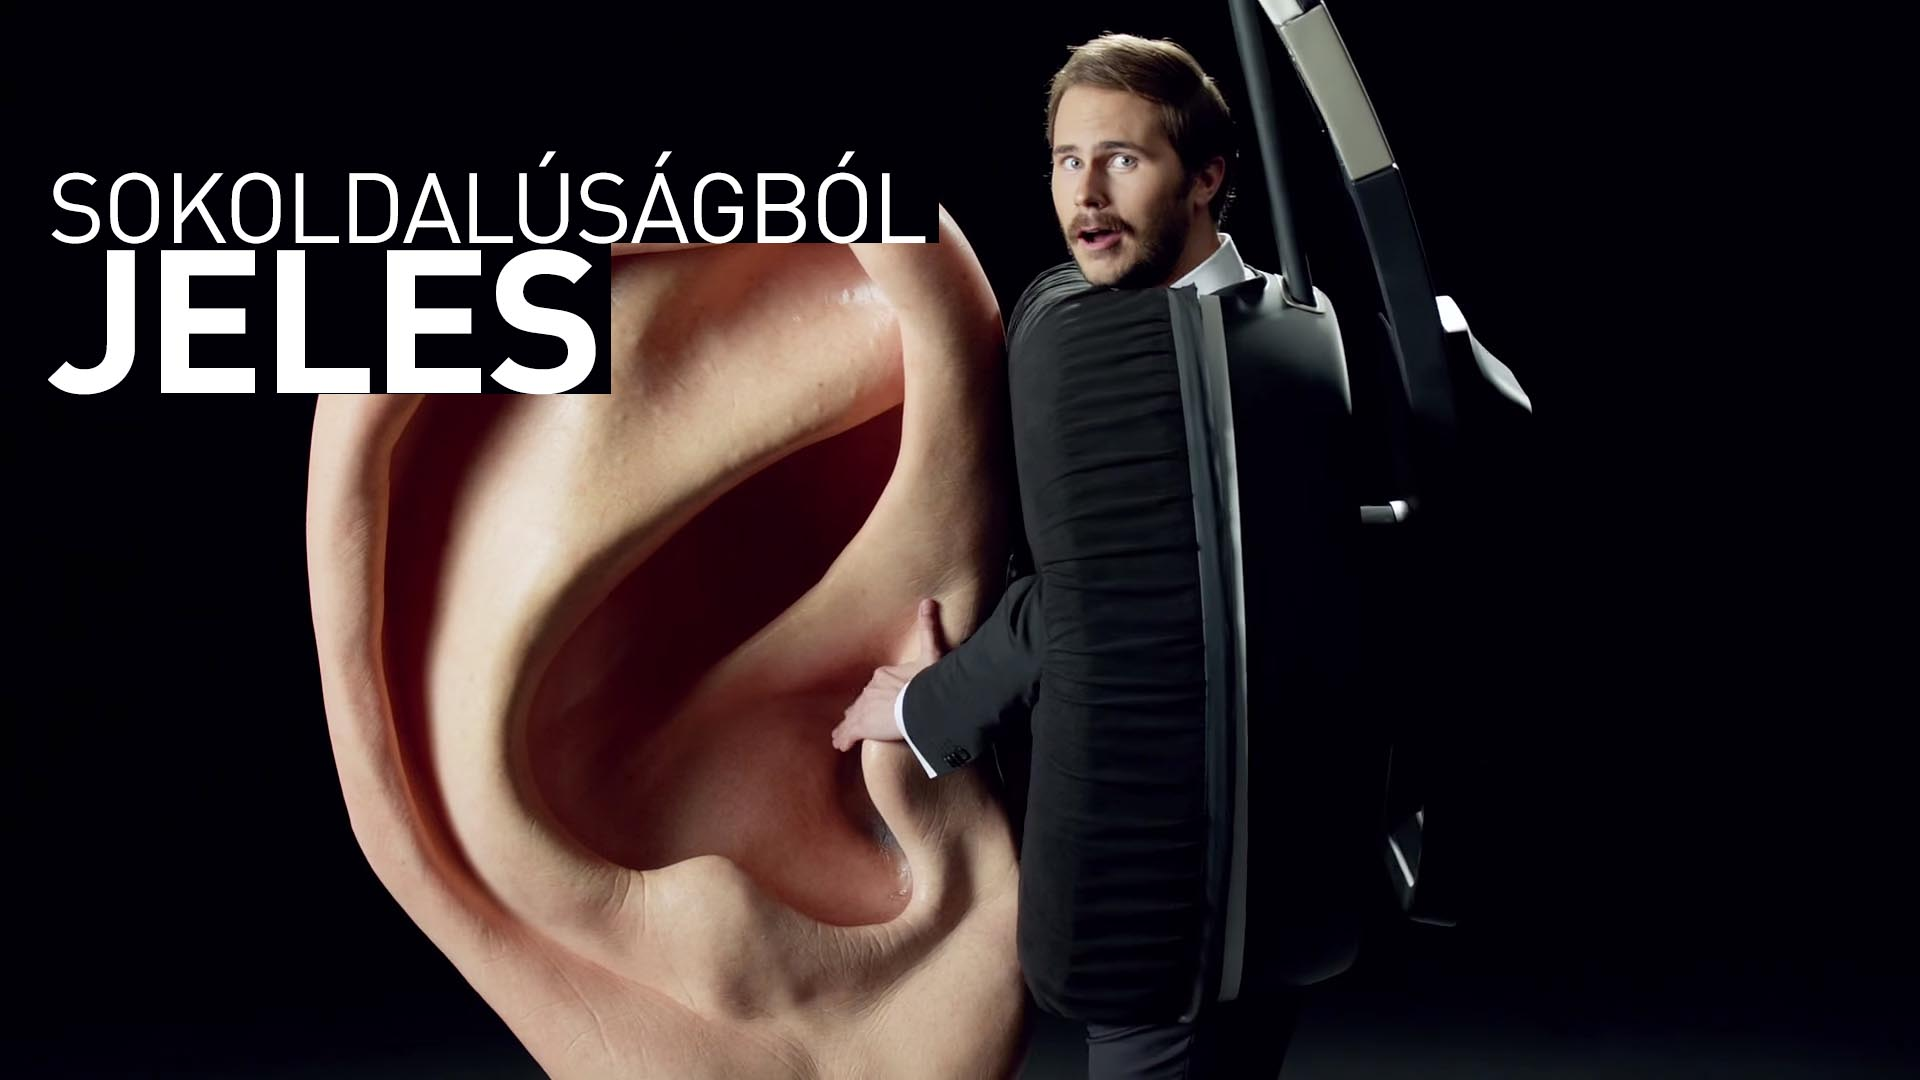 3035665-poster-p-1-this-creepy-german-dude-wants-you-to-wear-sennheiser-headphones.jpg